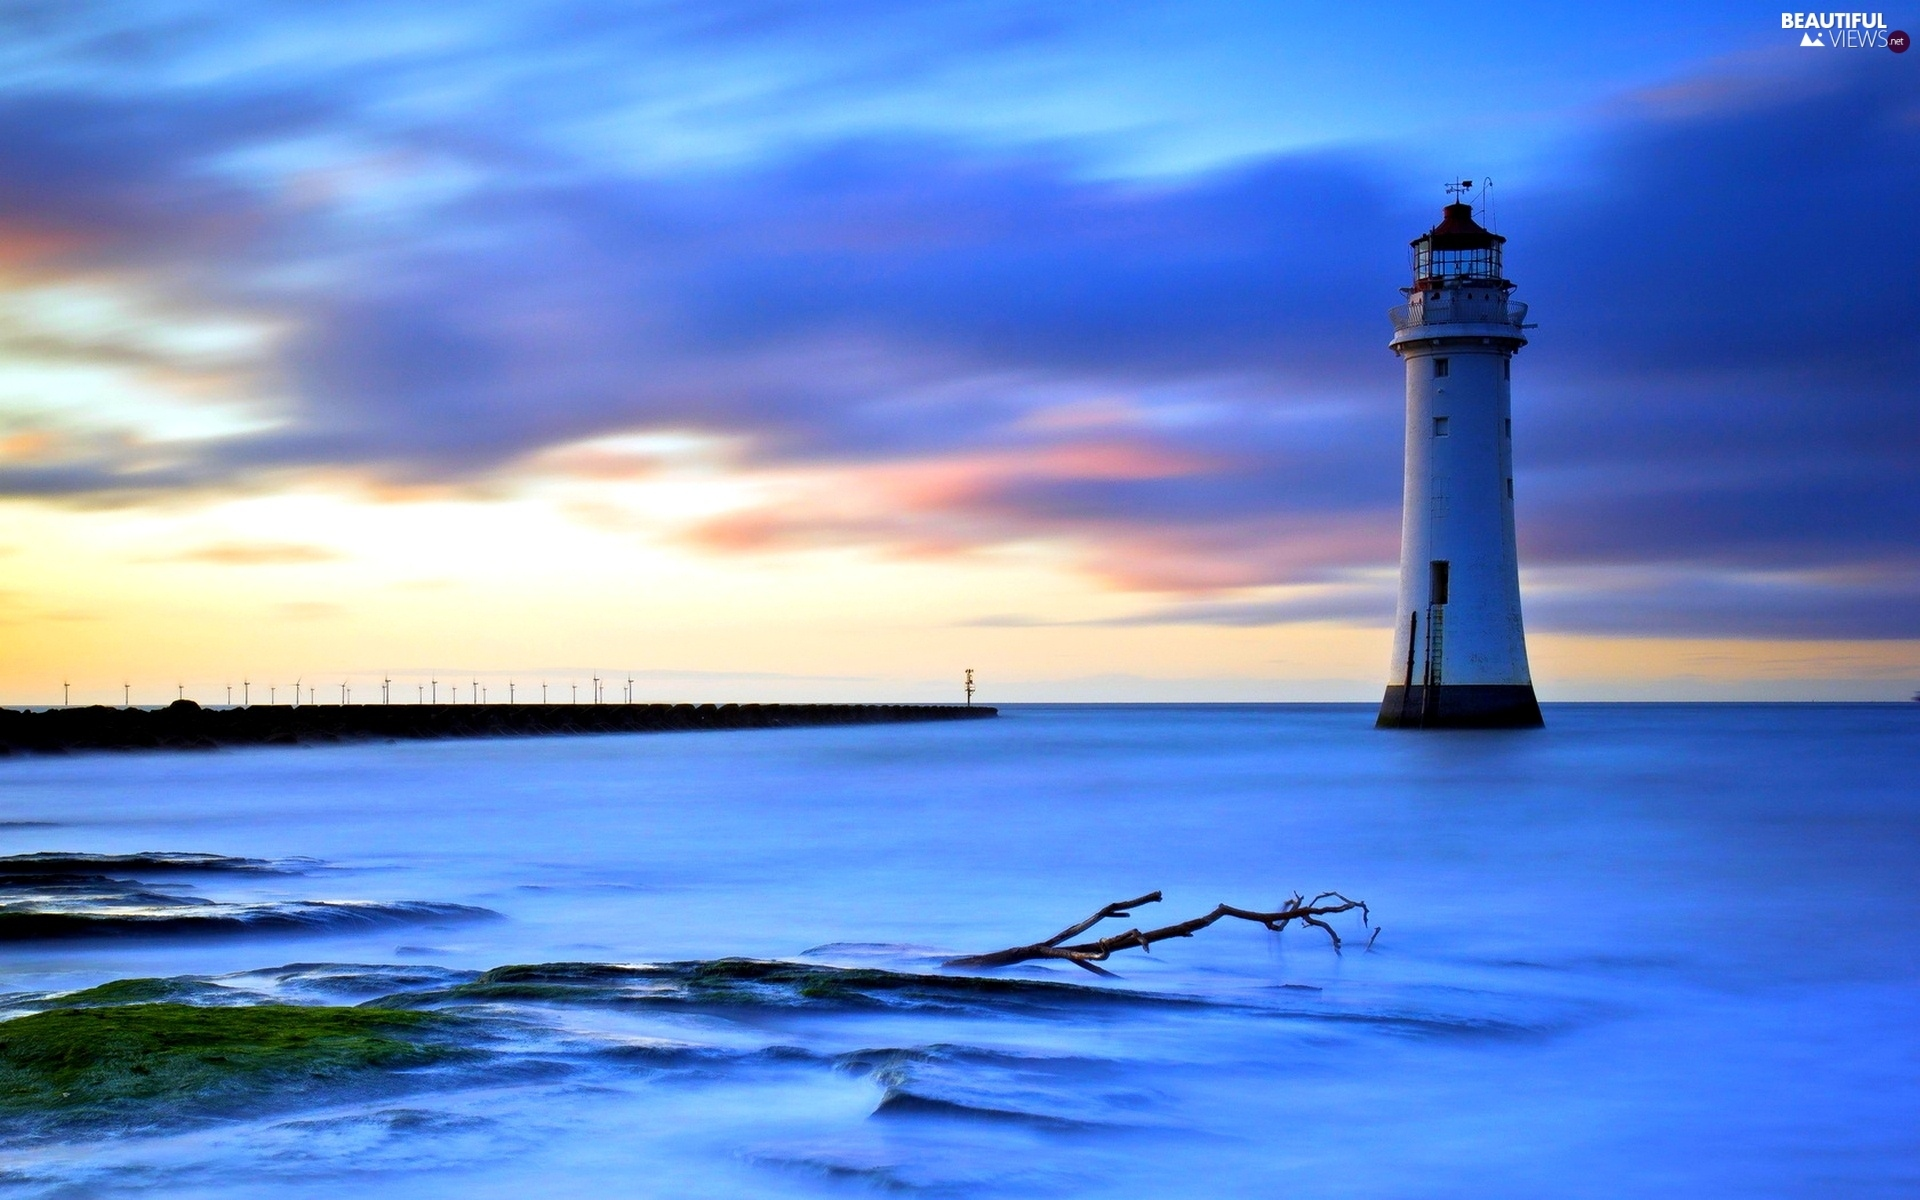 evening, Lighthouses, sea